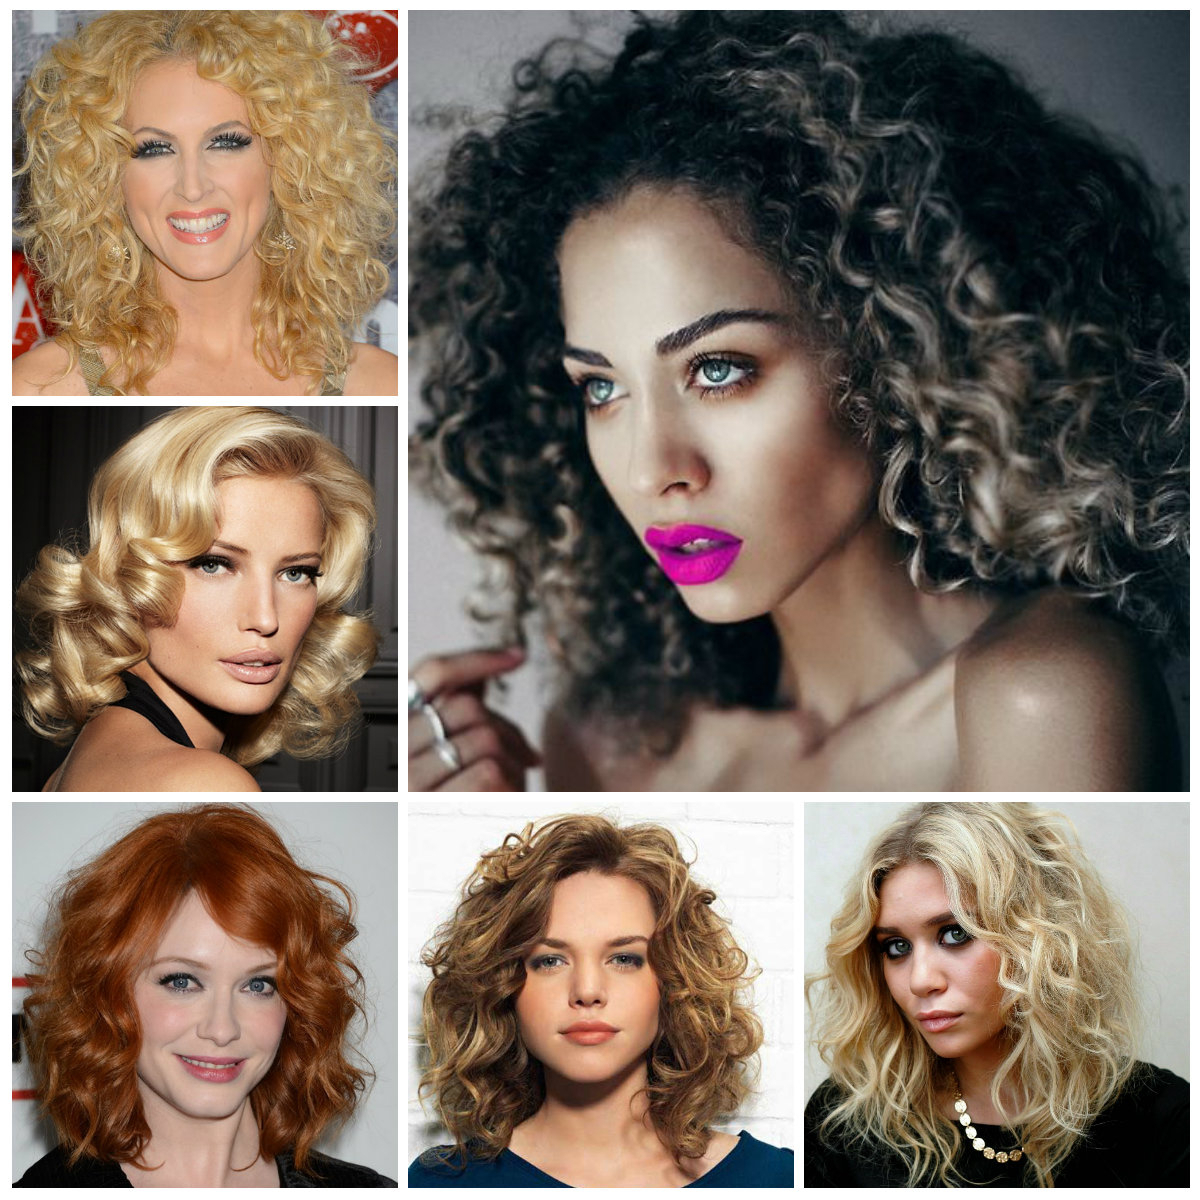 Curly Hairstyles | Haircuts, Hairstyles 2019 And Hair Colors For Pertaining To Trendy Short Curly Hairstyles (View 22 of 25)